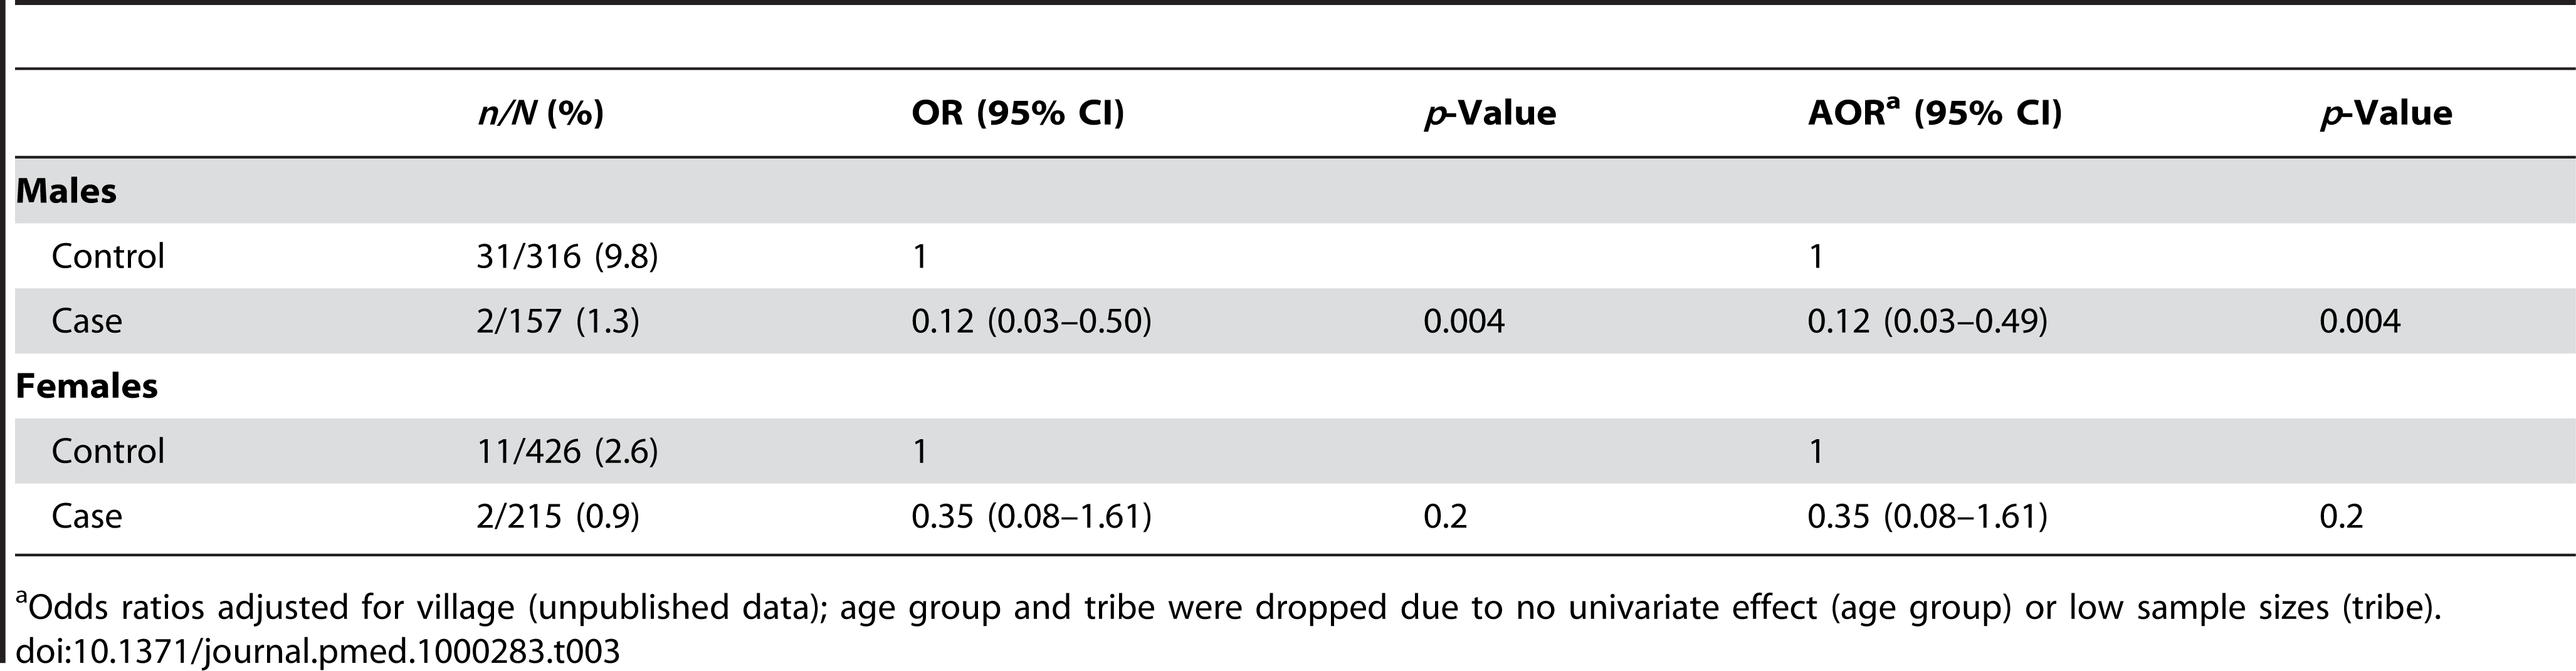 Unadjusted ORs and AORs for phenotypic G6PD deficiency stratified by sex.